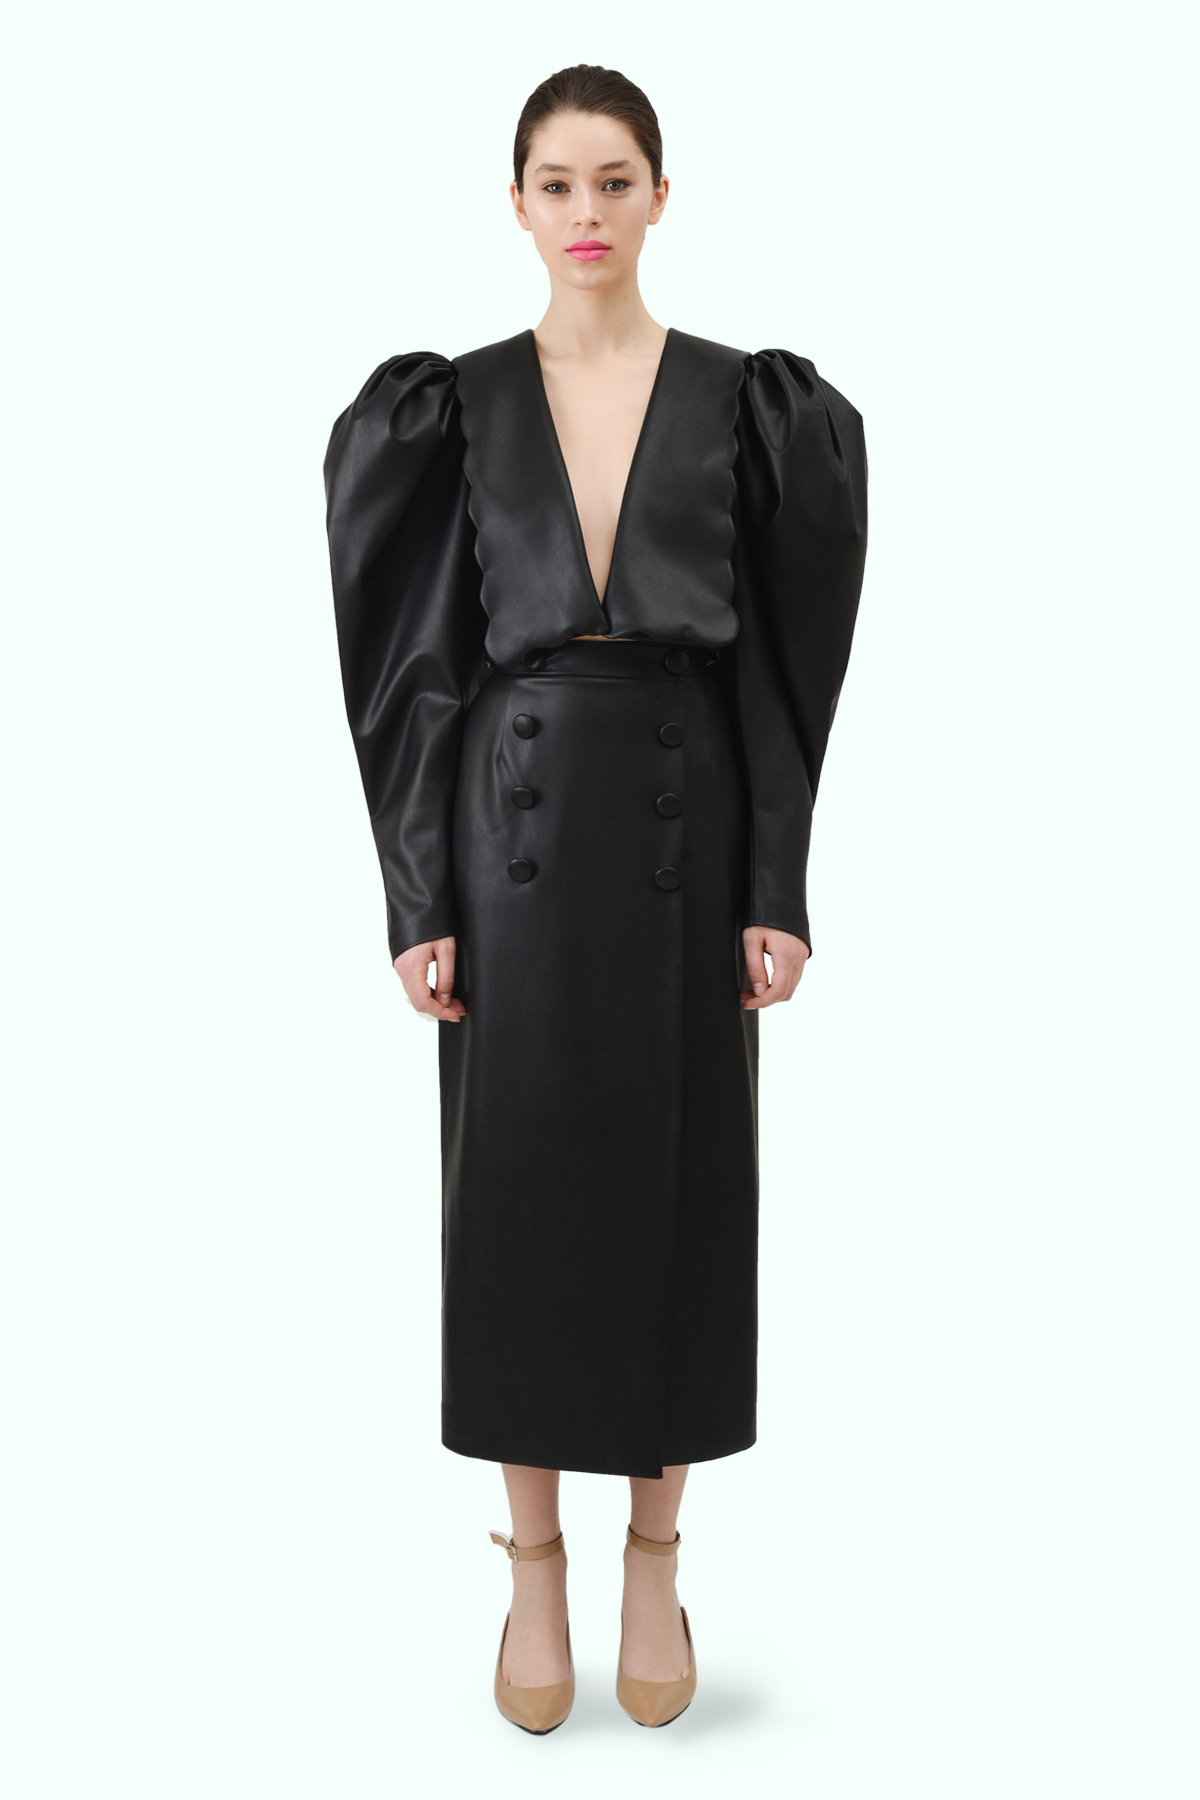 Black vegan leather puff sleeve and puritan collar cropped blazer